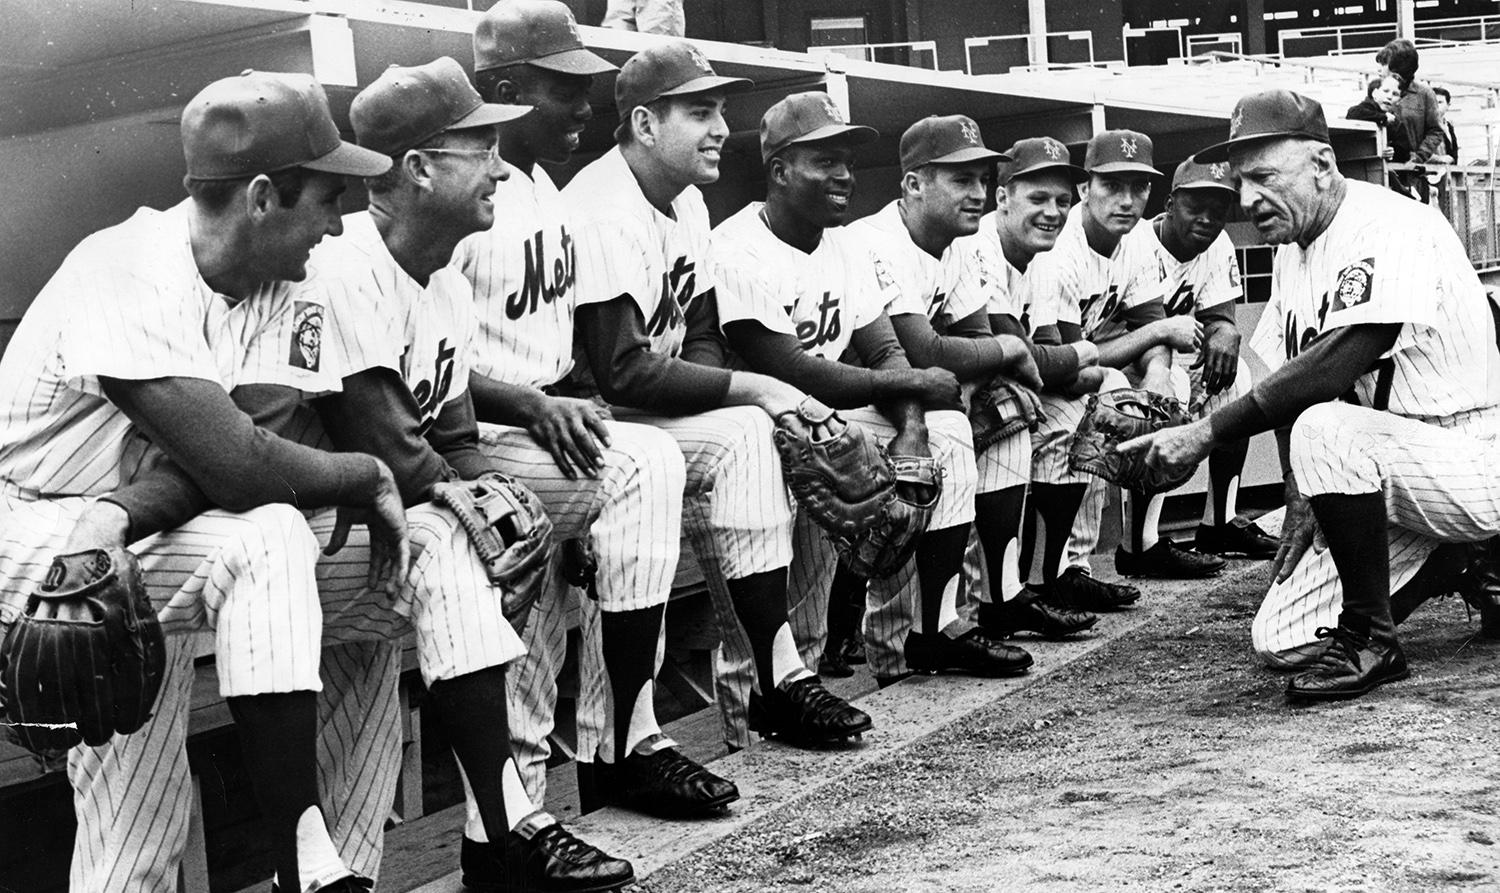 Casey Stengel talks to his Opening Day lineup on April 12, 1965. From left to right:  Billy Cowan, Roy McMillan, Johnny Lewis, Ed Kranepool, Joe Christopher, Charley Smith, Billy Klaus, Chris Cannizzaro and Al Jackson. (National Baseball Hall of Fame)